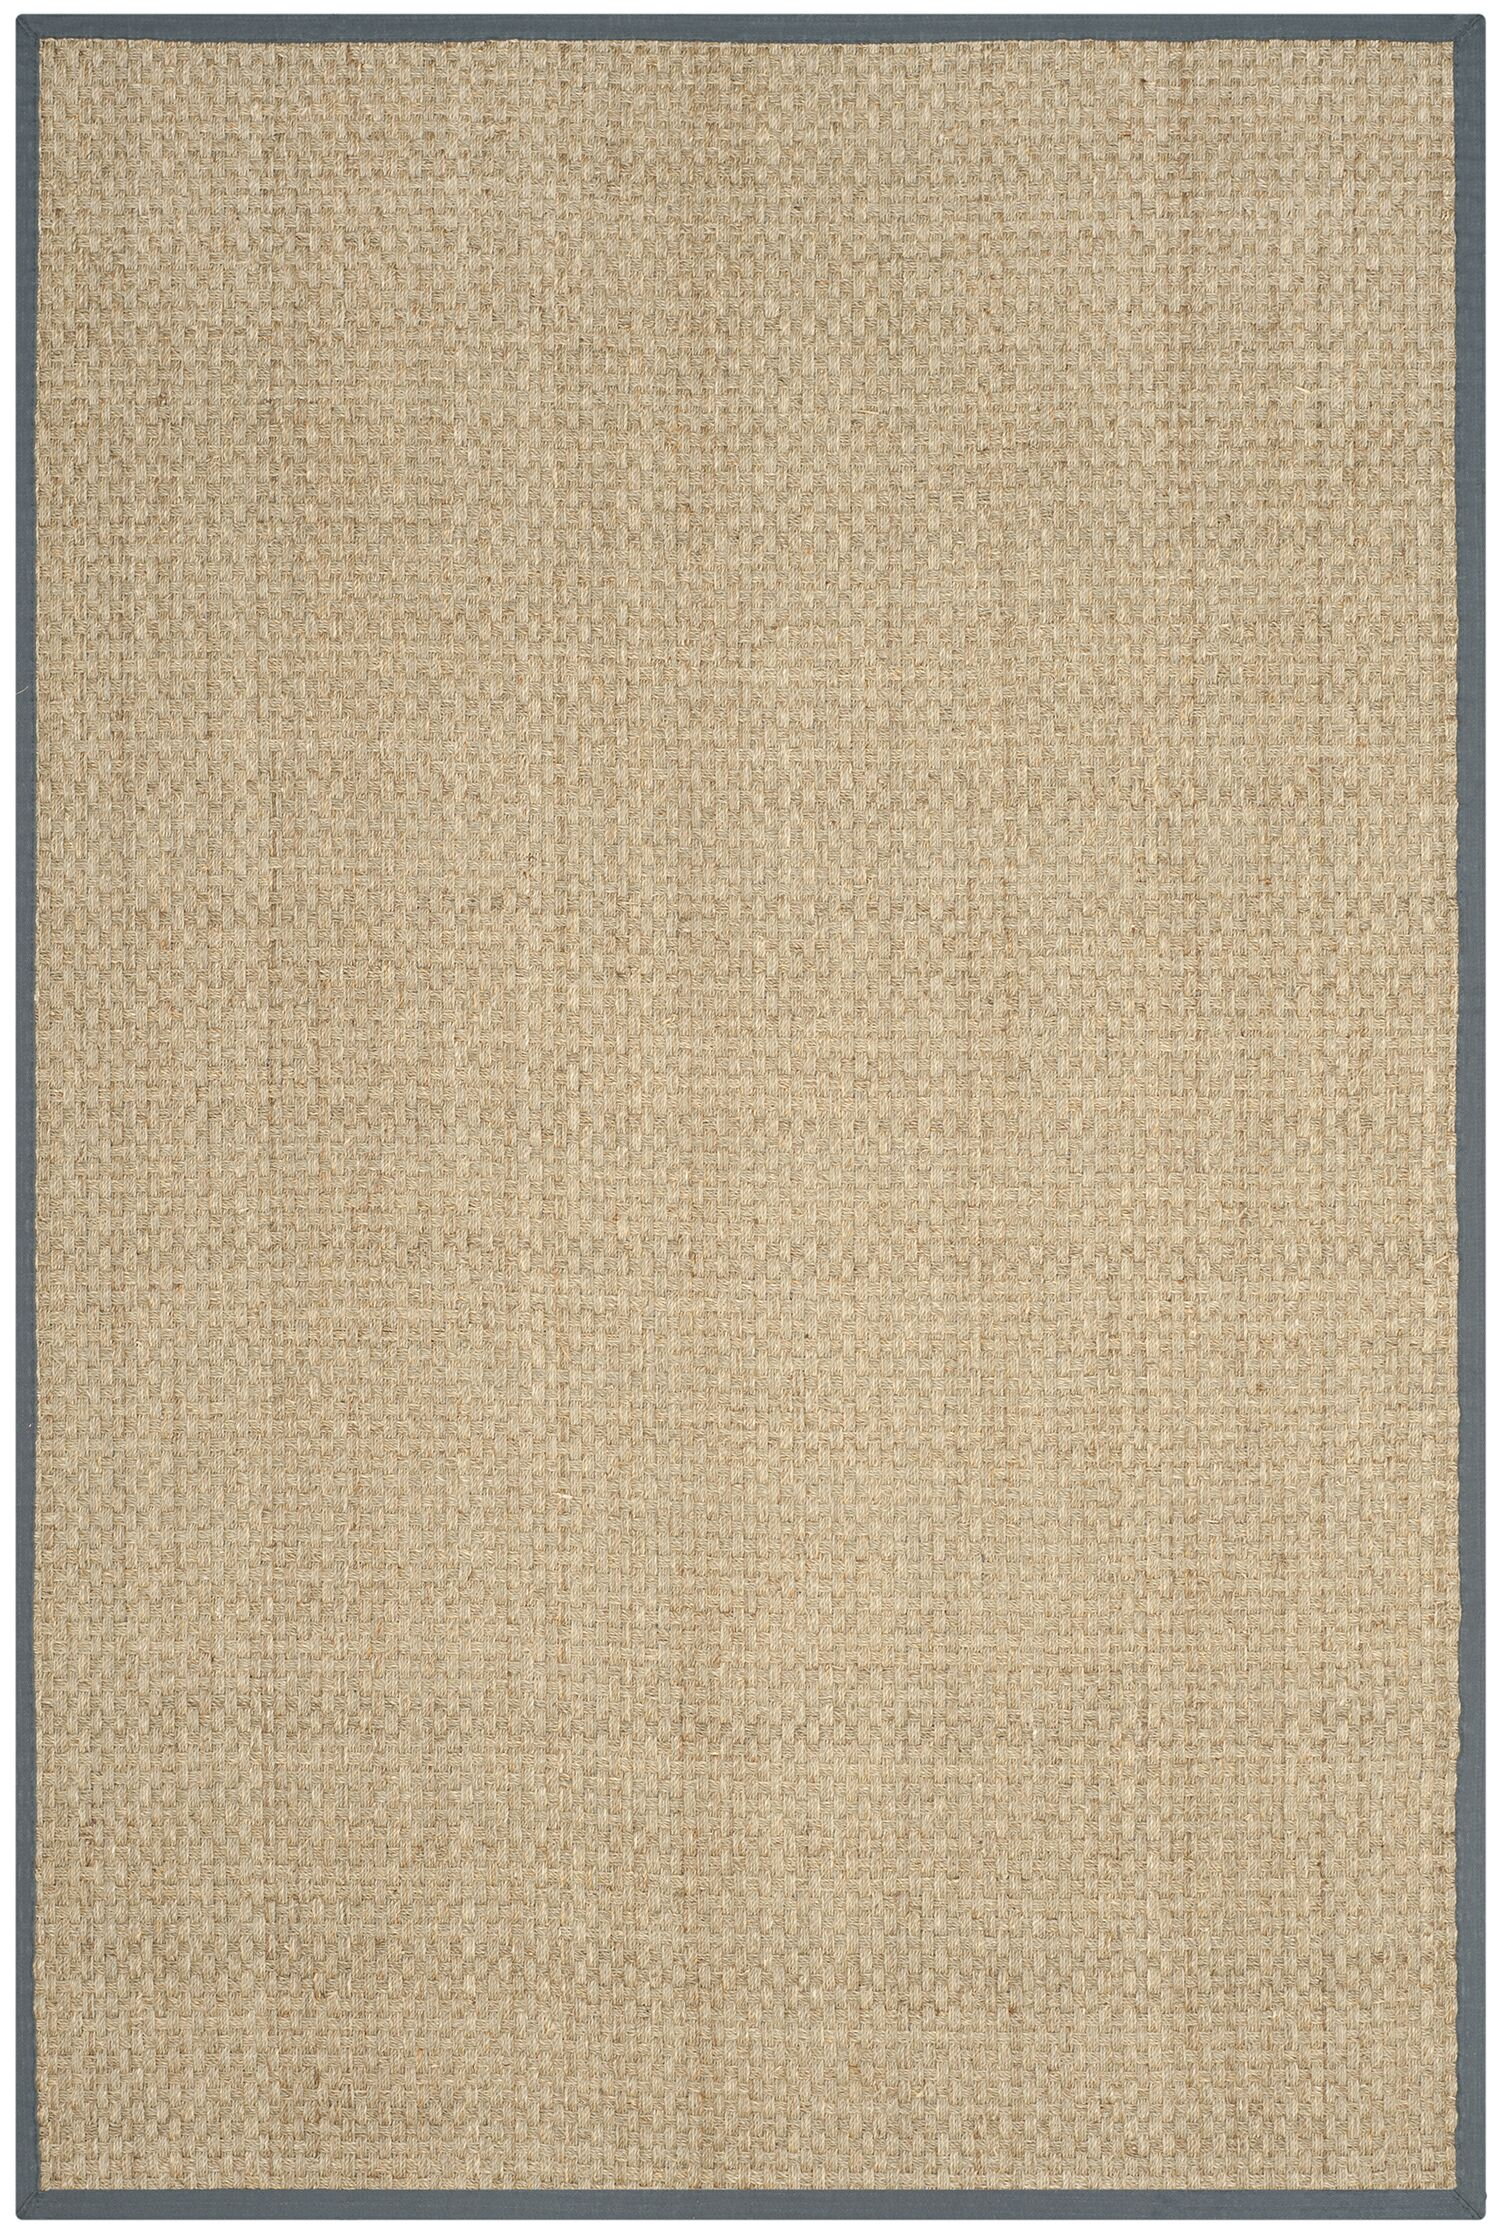 Binford Natural/Dark Gray Area Rug Rug Size: Rectangle 9' x 12'